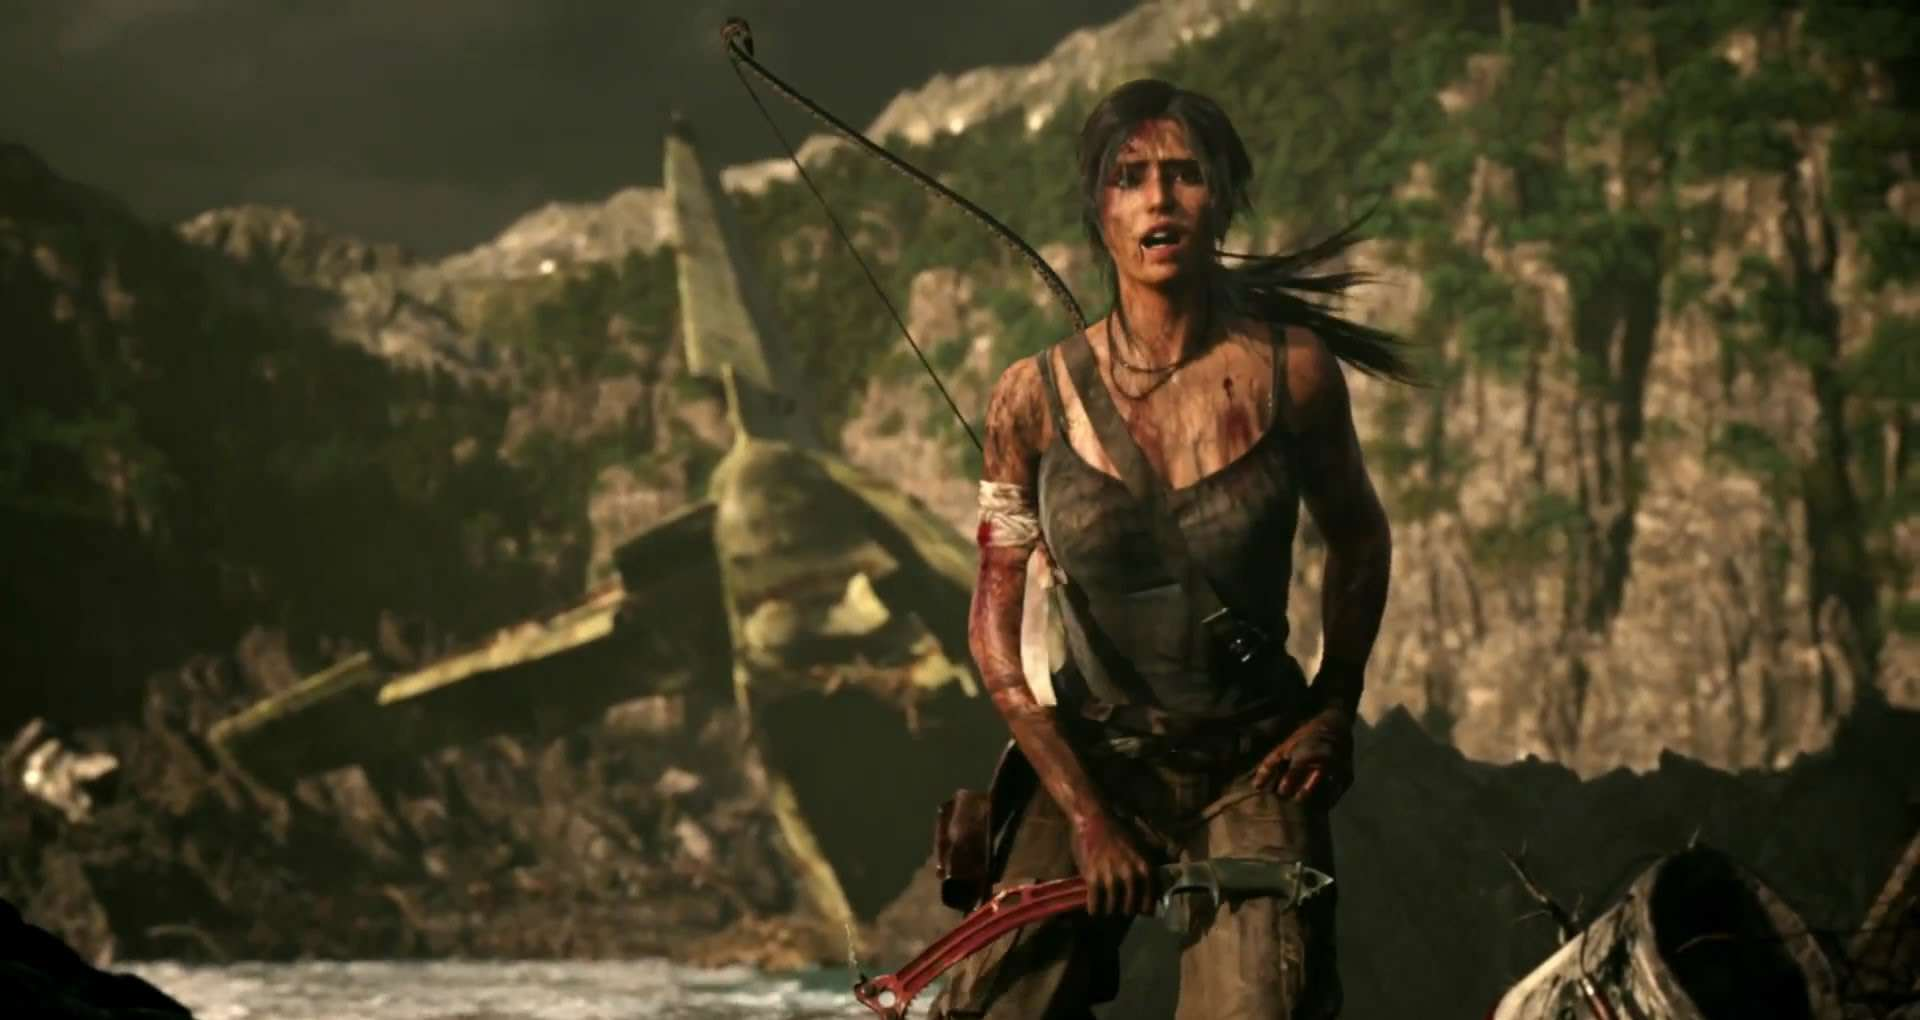 maxresdefault 11 1 Alicia Vikander Reveals New Info On Upcoming Tomb Raider Film